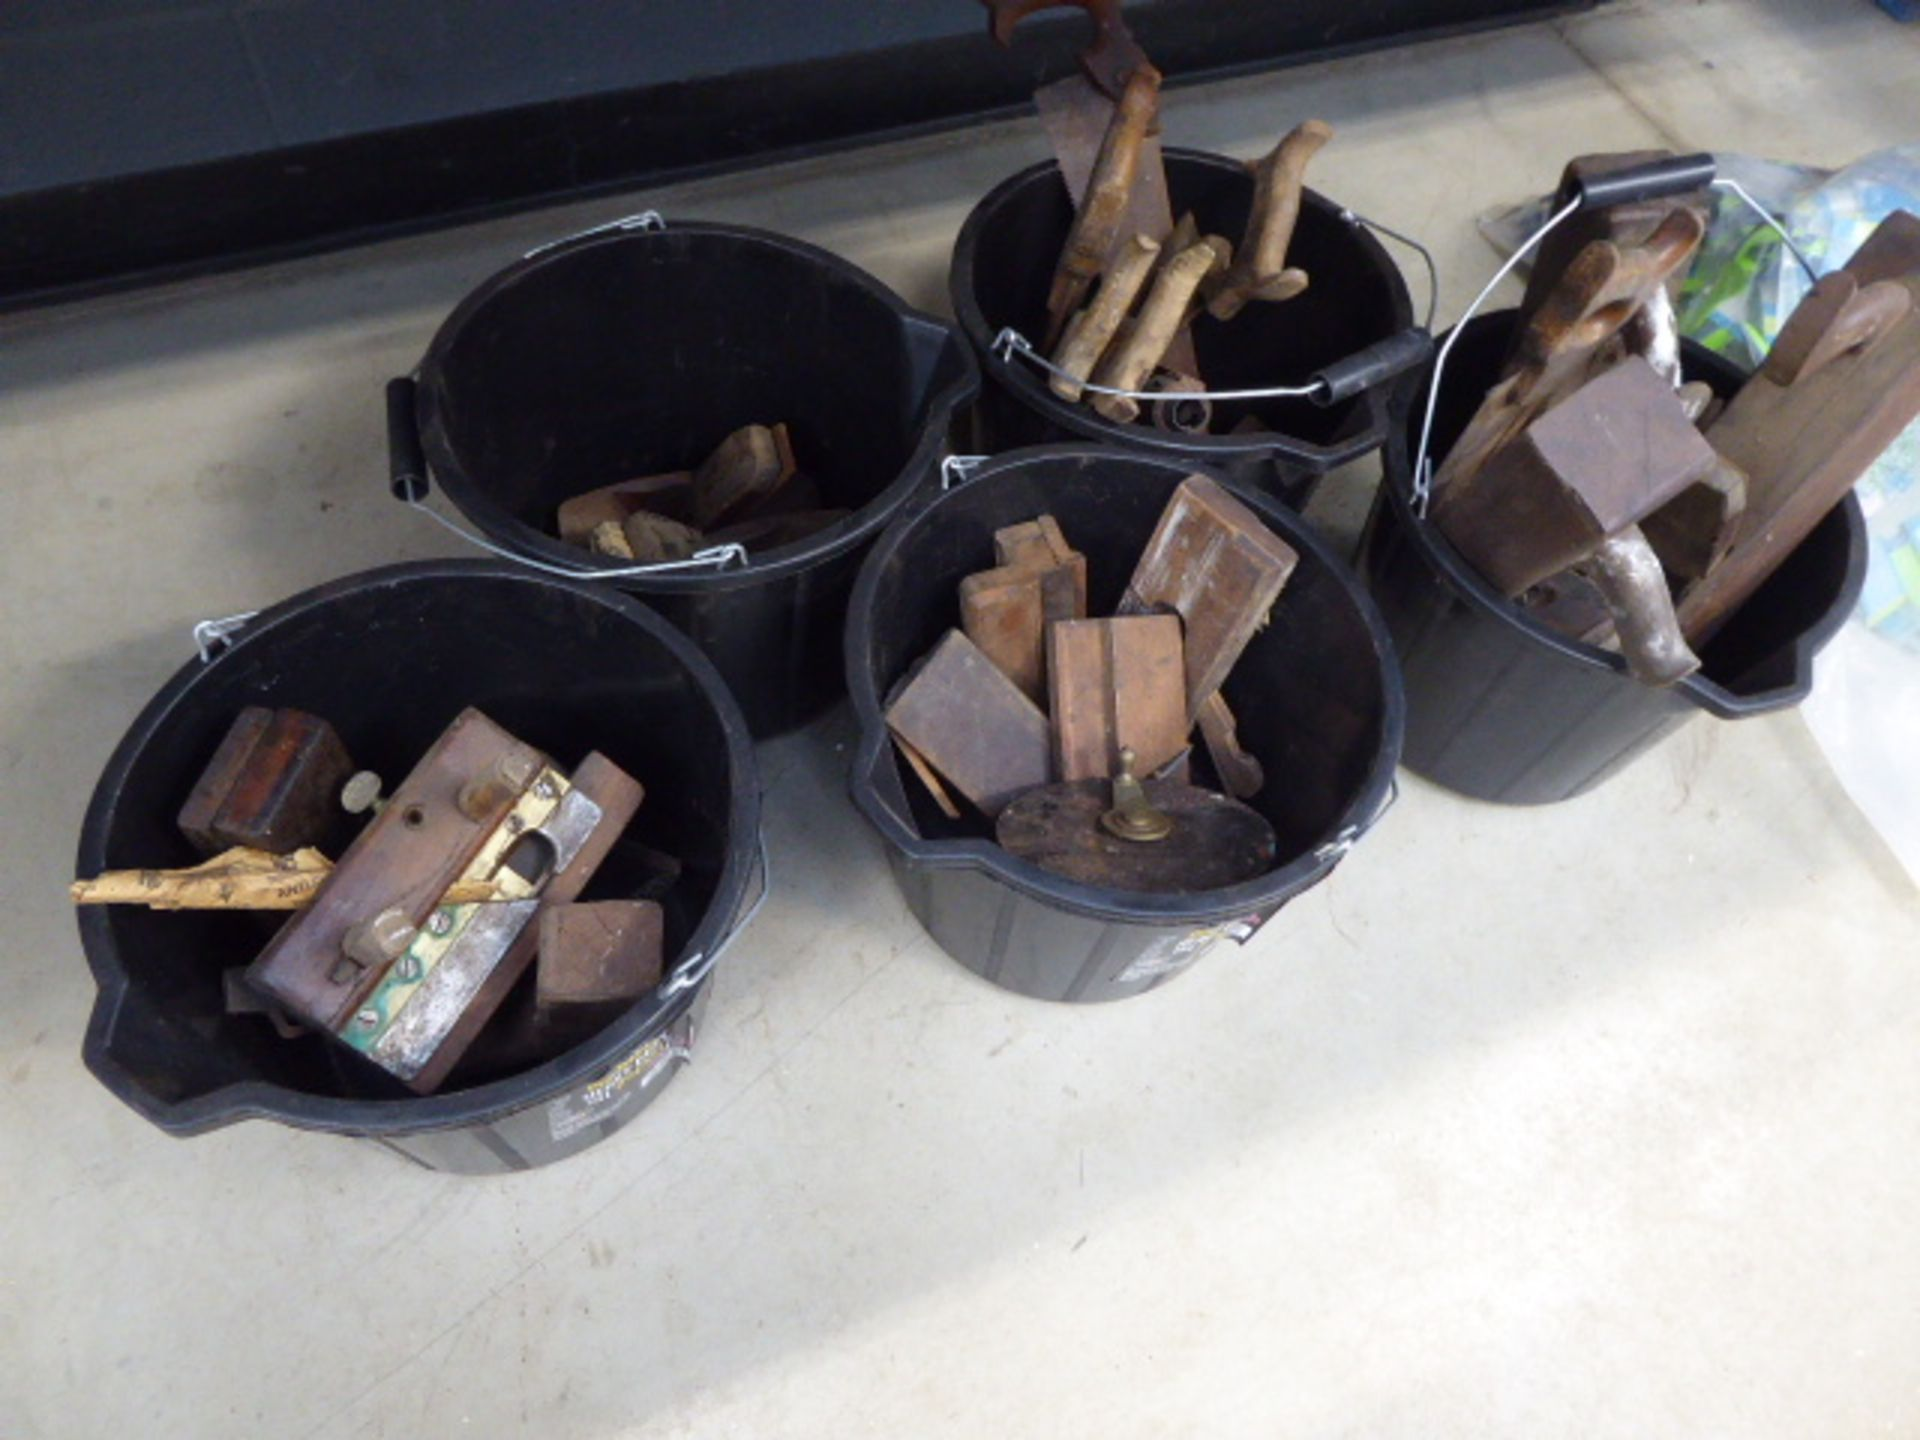 5 buckets containing wood chisels, blow lamps, vintage saws, tape measuring tape, etc.